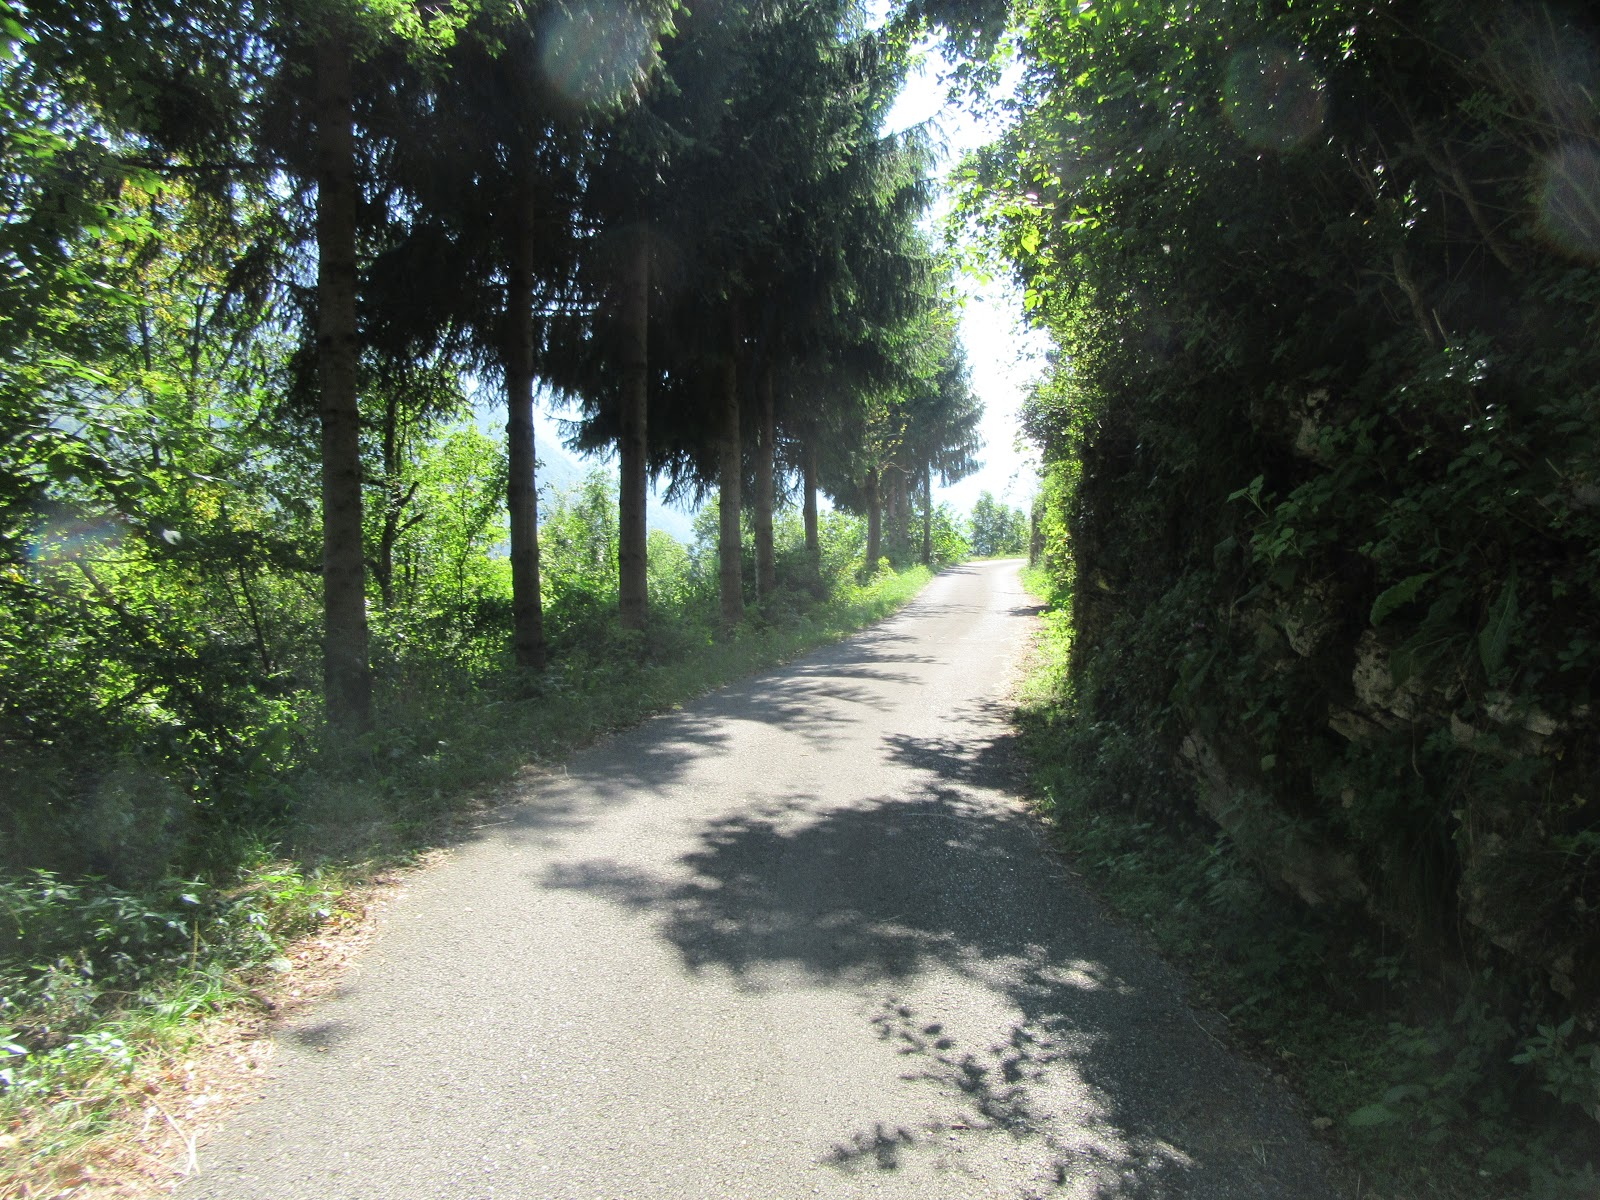 Biking Monte Grappa from Seren - road surrounded by trees